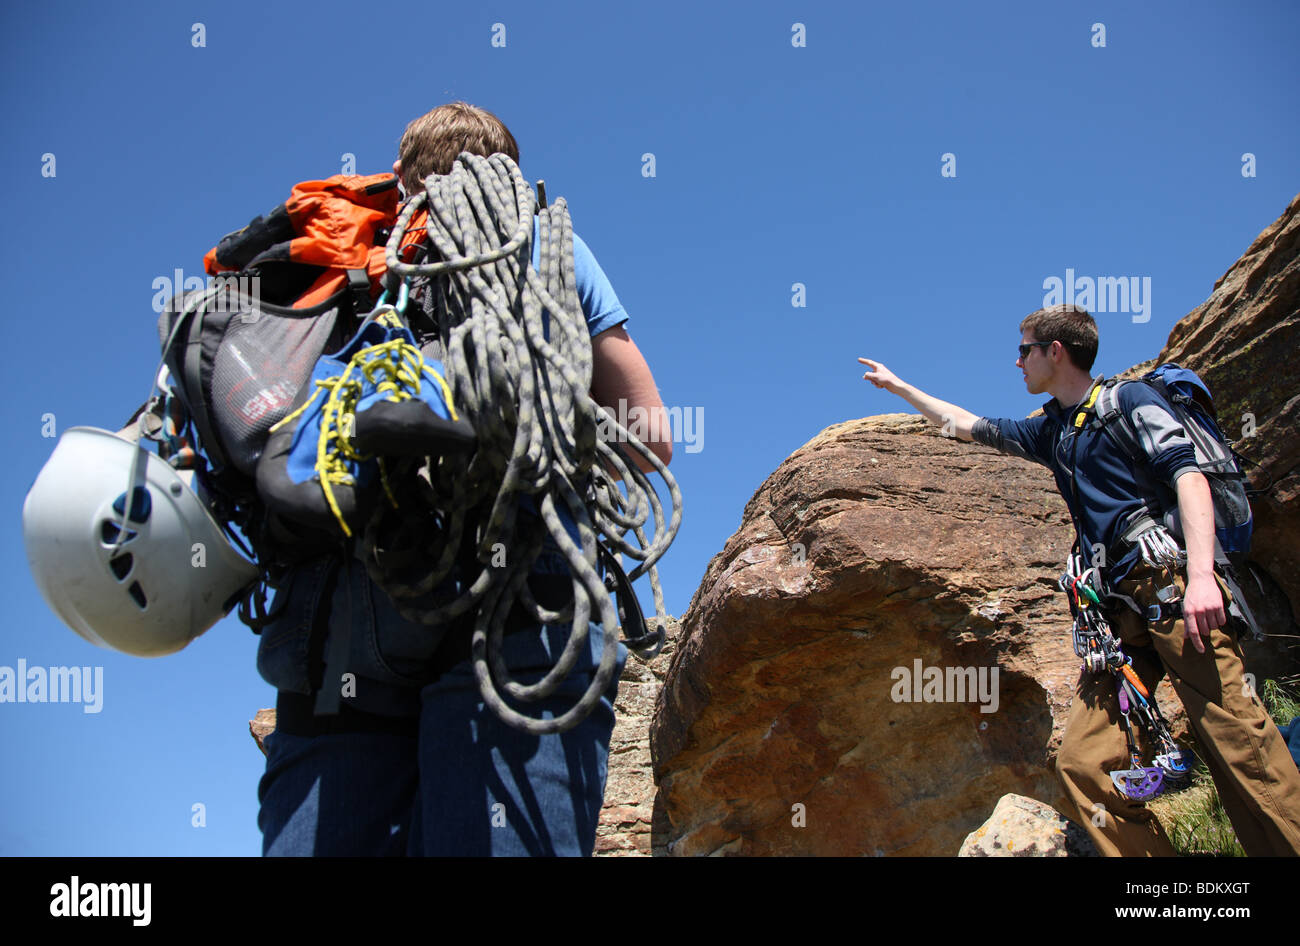 Two rock climbers gear up for climb - Stock Image